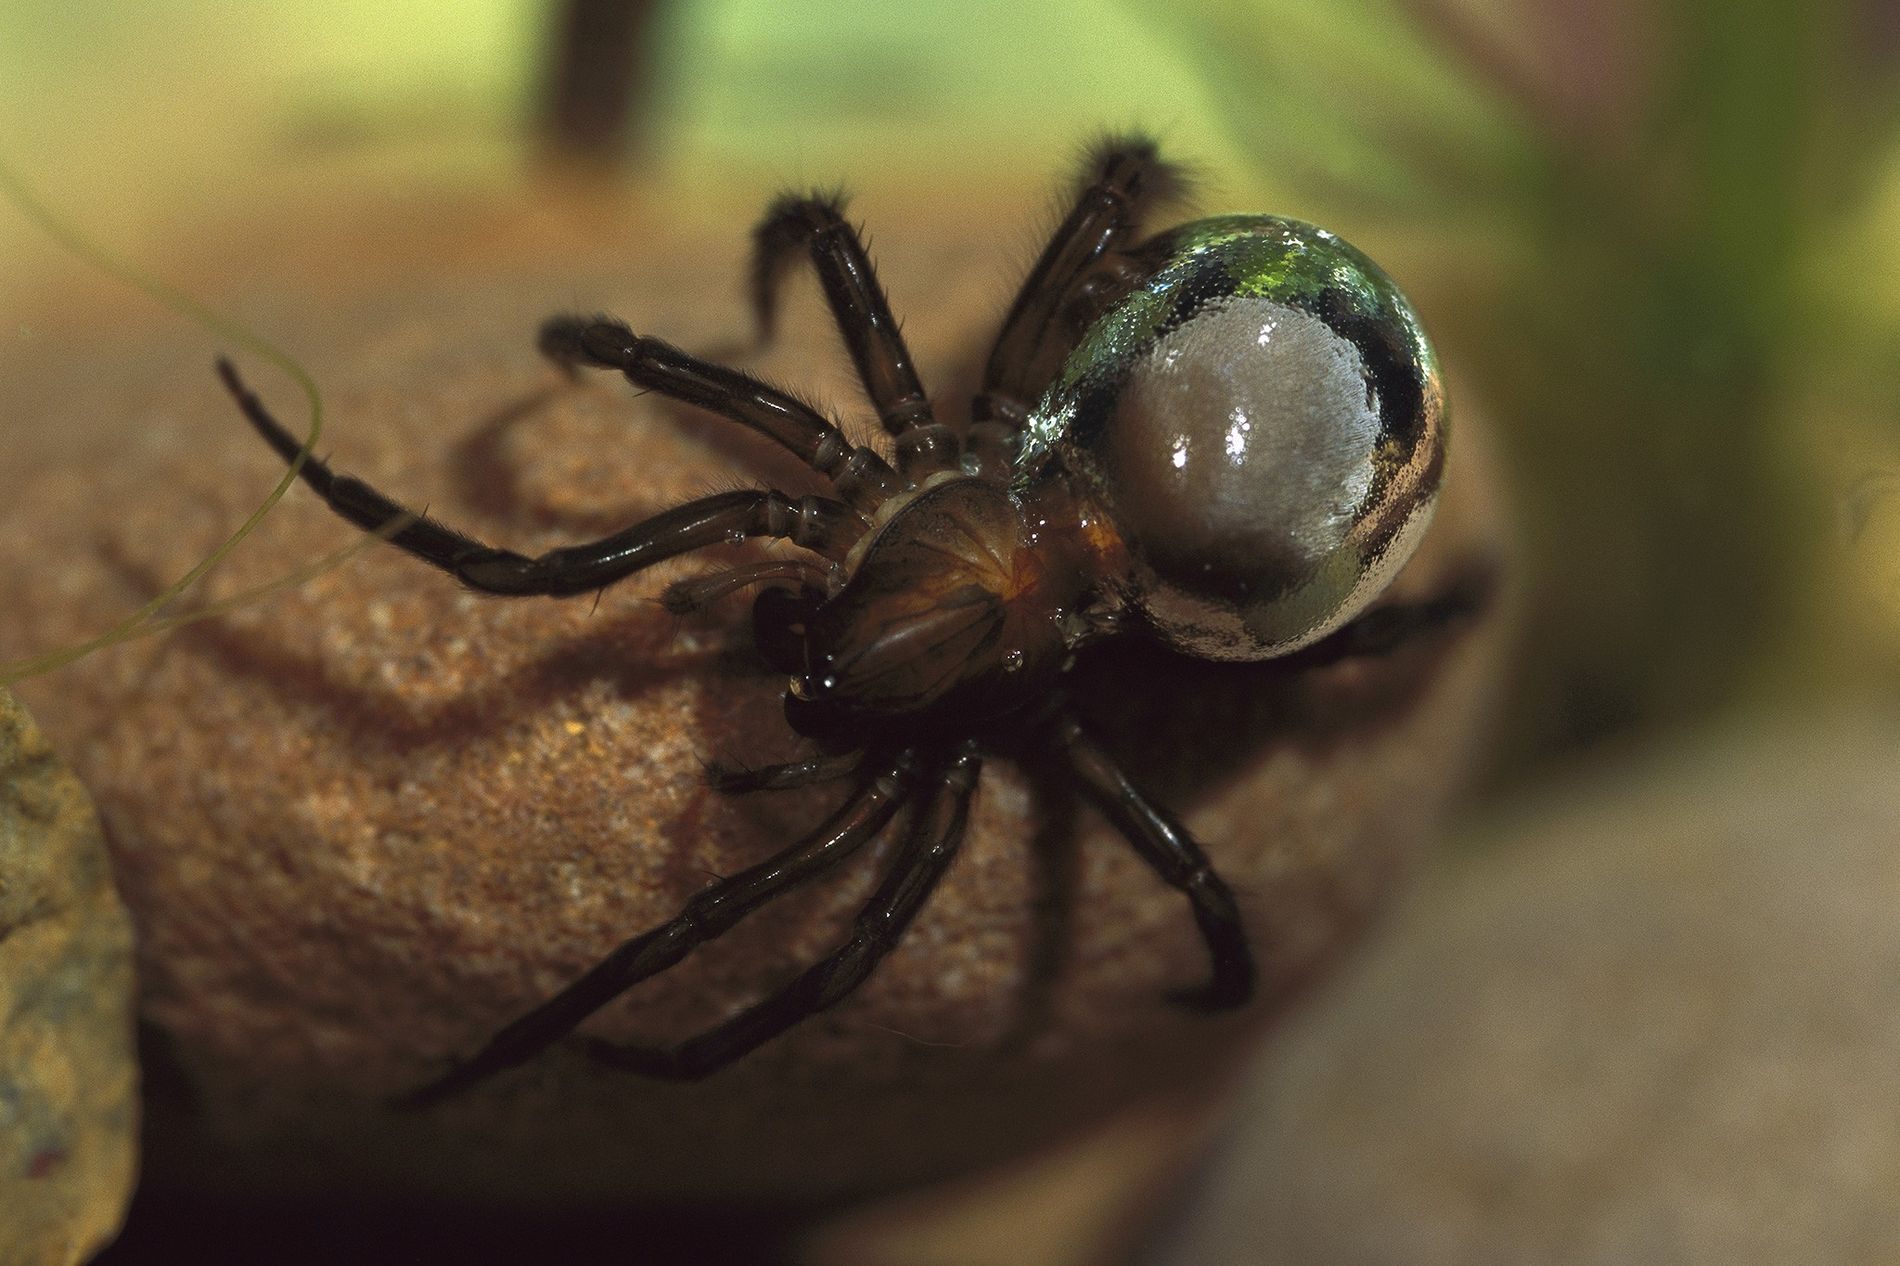 A diving bell spider carries trapped air on its abdomen, giving it a silvery appearance.